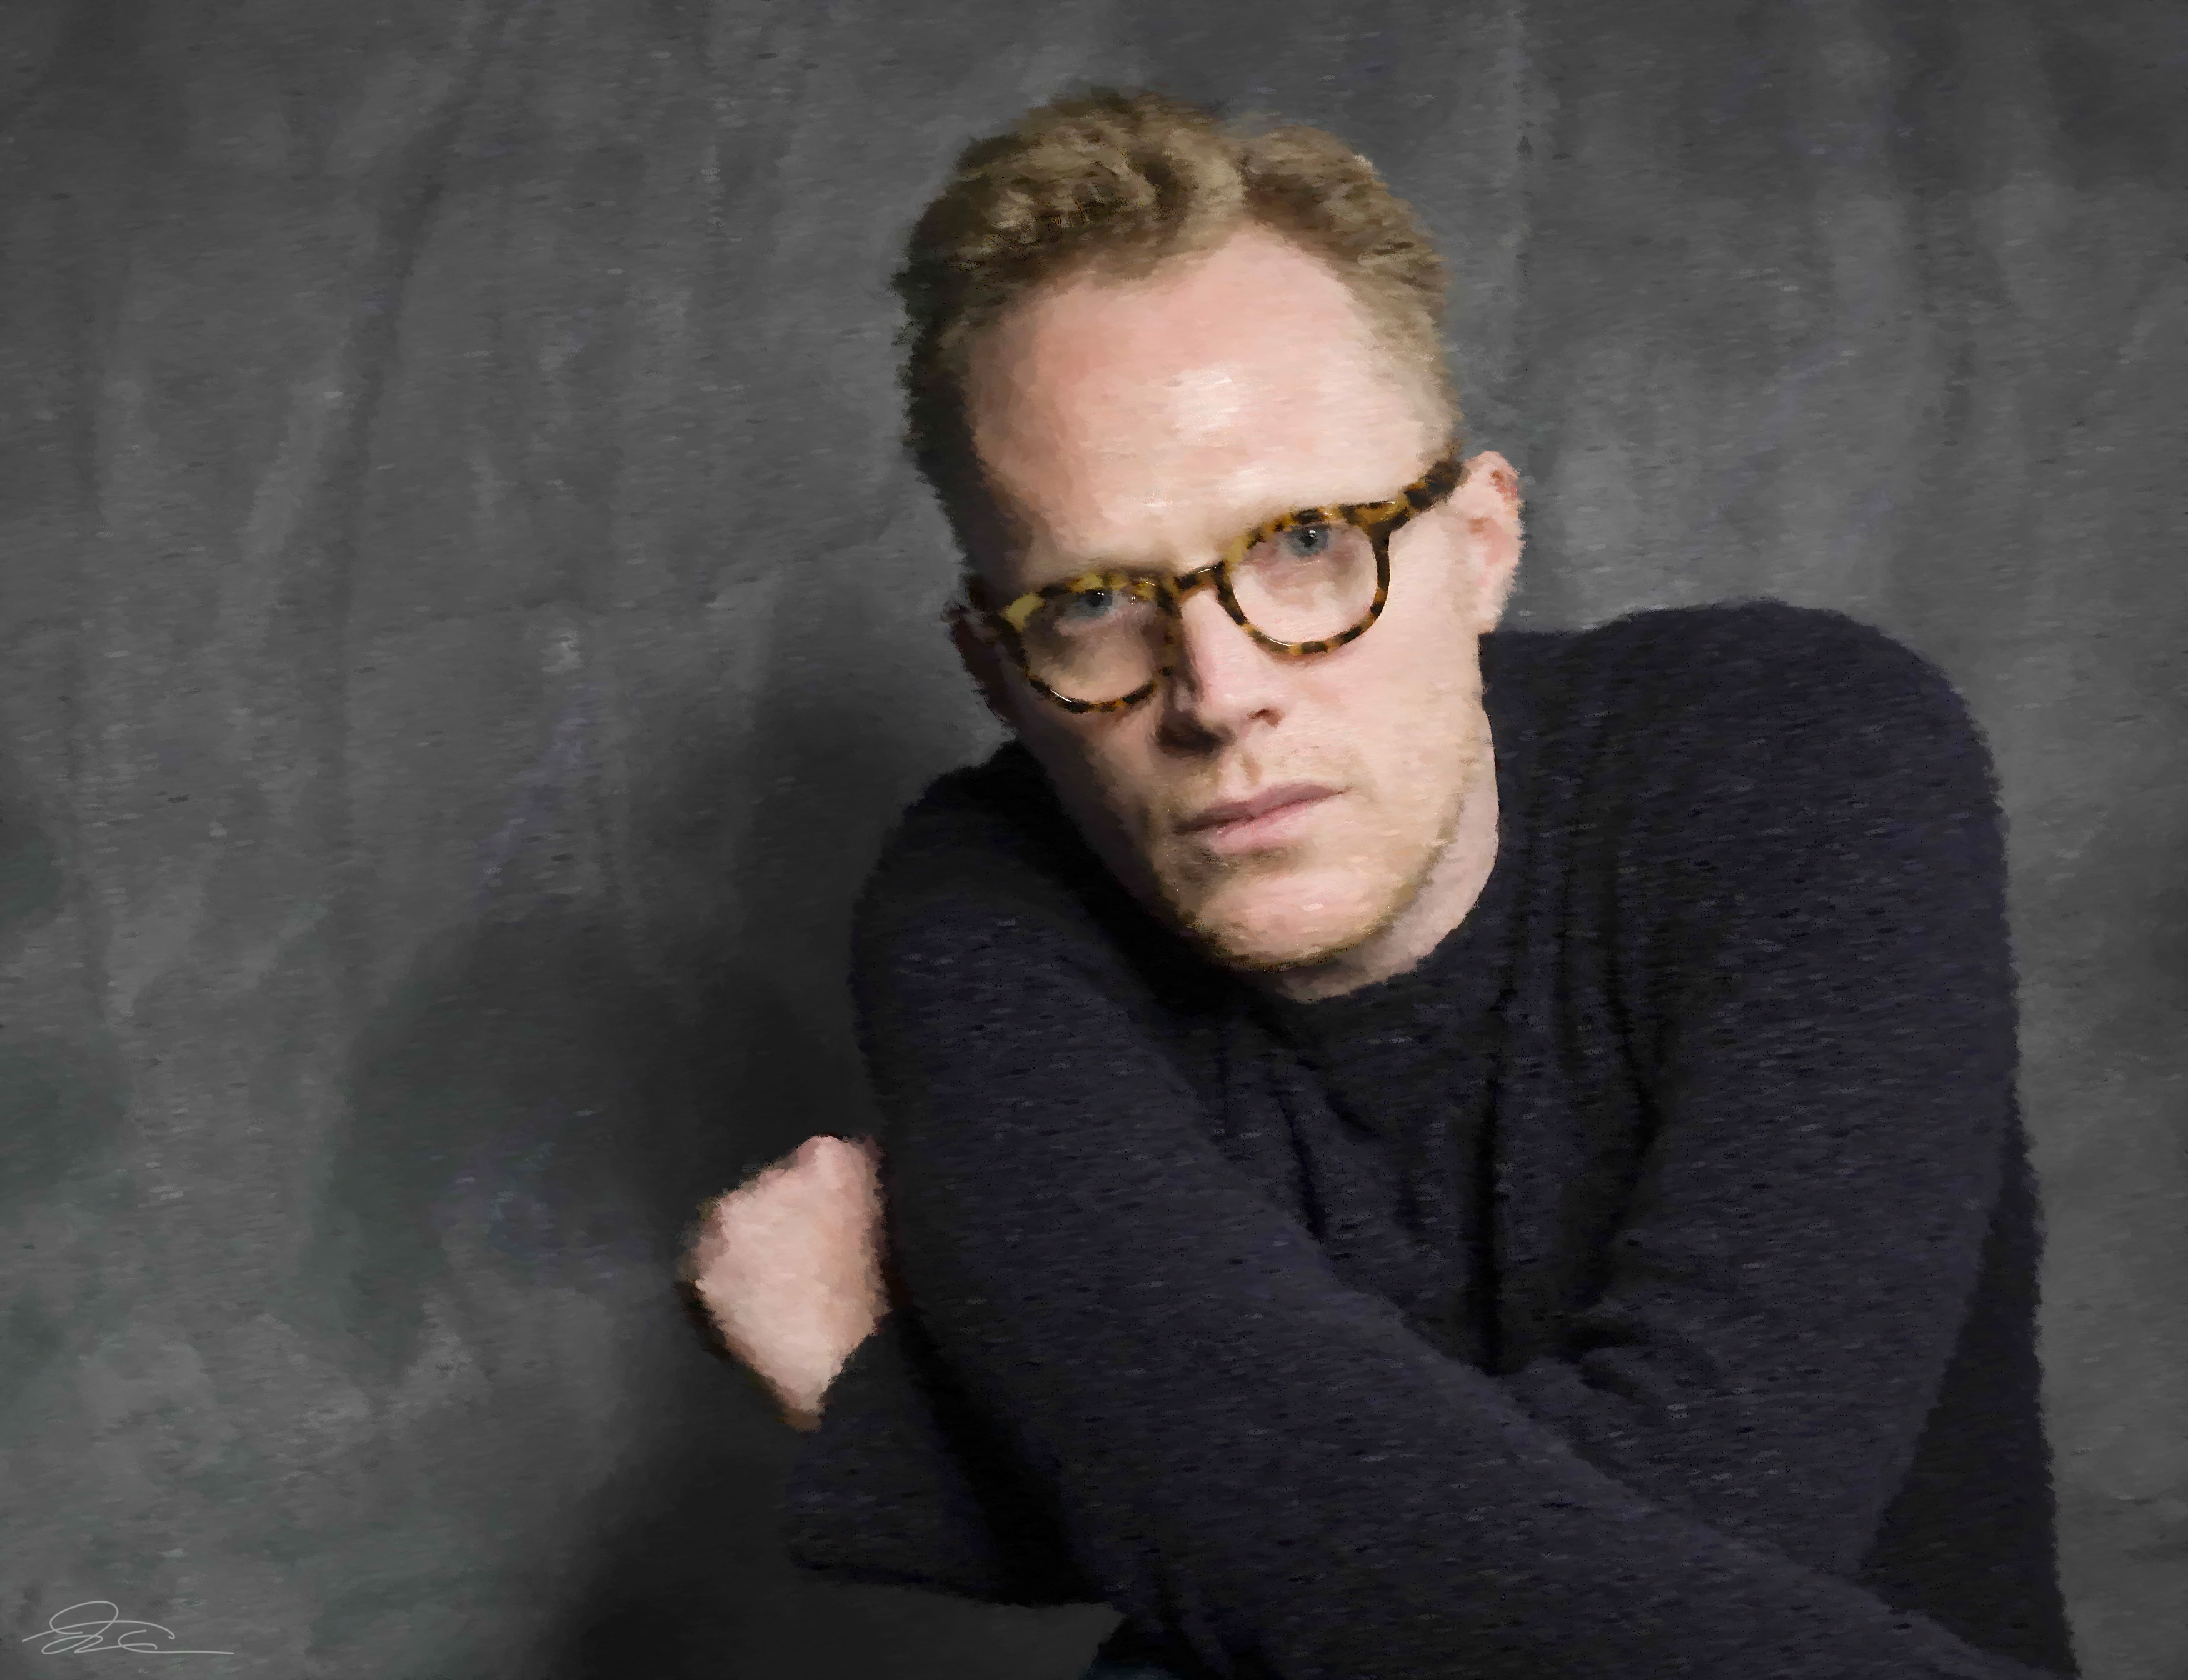 Pictures Of Paul Bettany